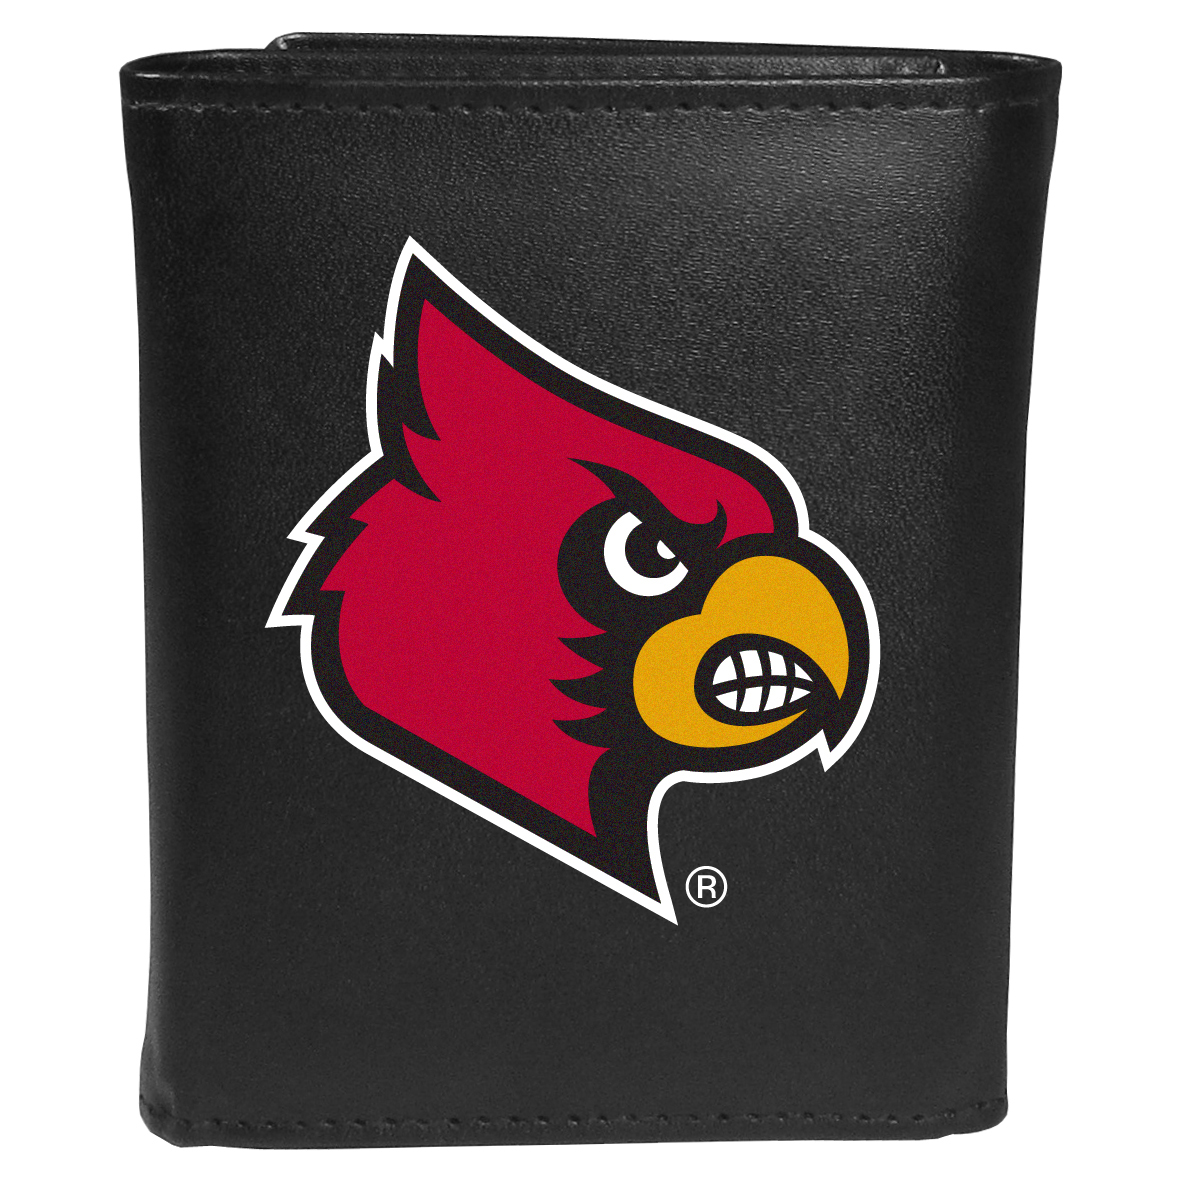 Louisville Cardinals Tri-fold Wallet Large Logo - Sports fans do not have to sacrifice style with this classic tri-fold wallet that sports theLouisville Cardinals?extra large logo. This men's fashion accessory has a leather grain look and expert craftmanship for a quality wallet at a great price. The wallet features inner credit card slots, windowed ID slot and a large billfold pocket. The front of the wallet features an extra large printed team logo.